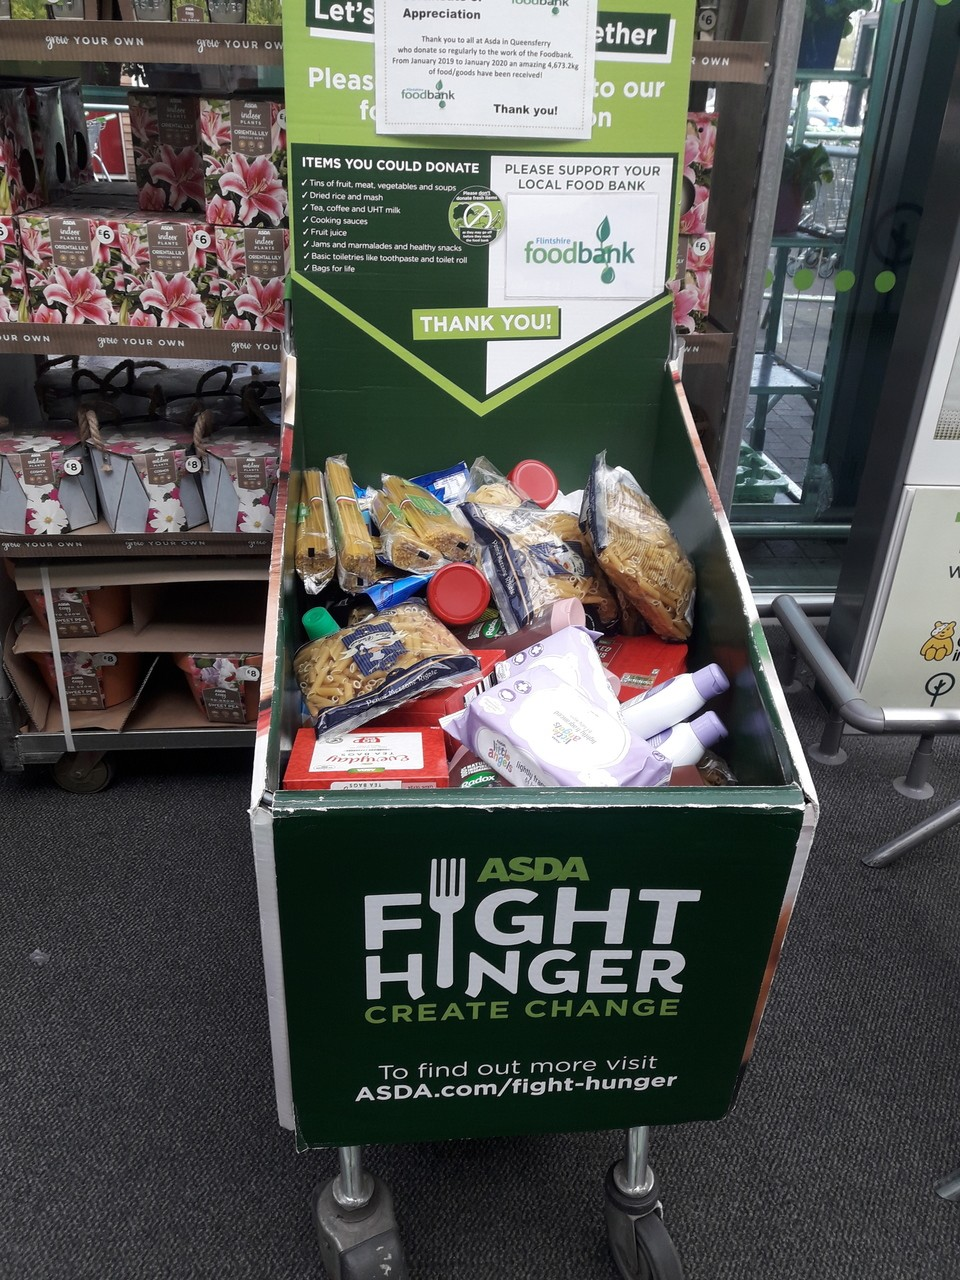 Donations to food bank | Asda Queensferry